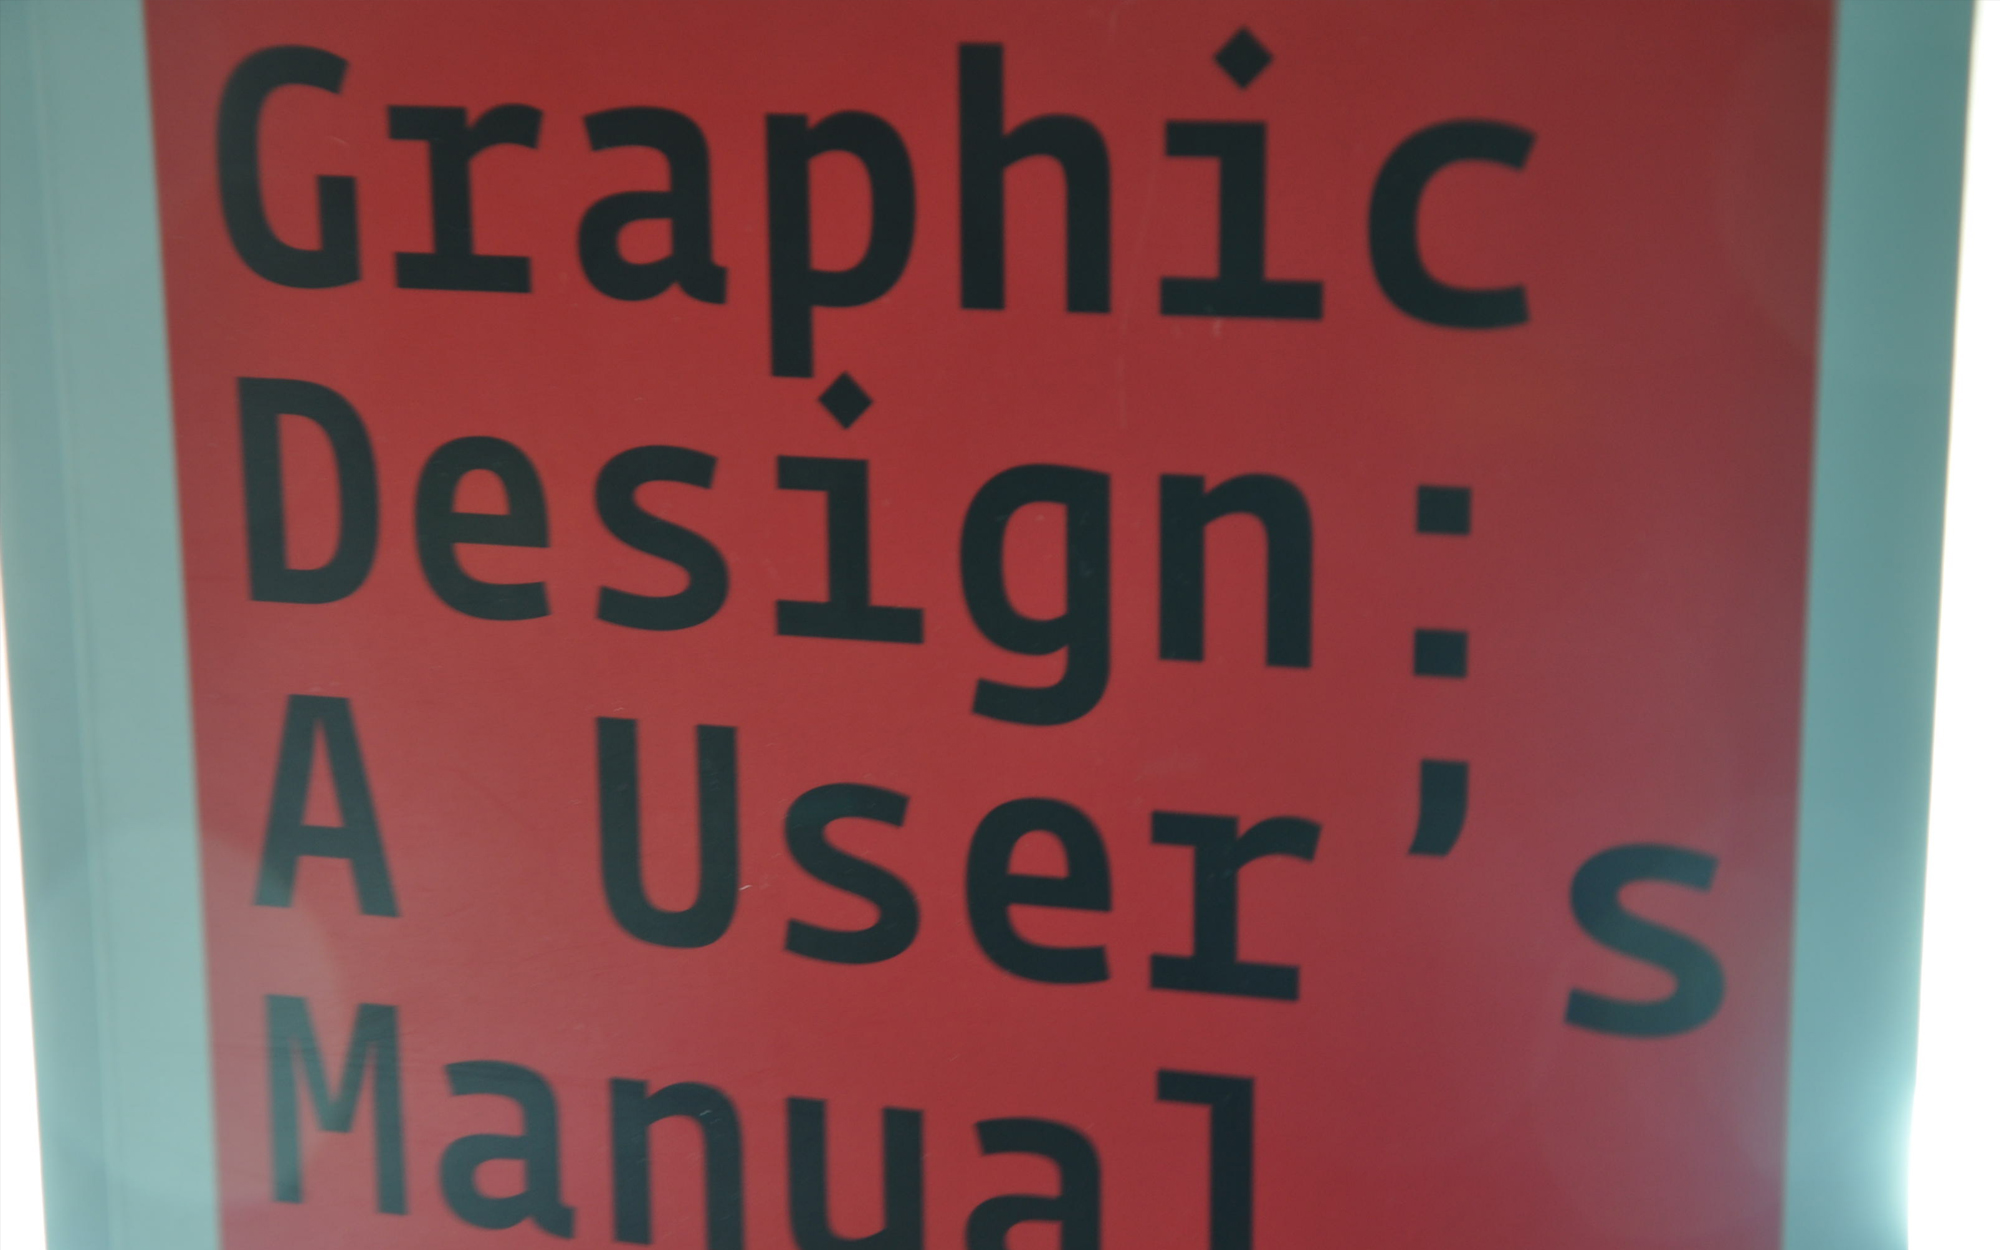 Graphic design: a users manual